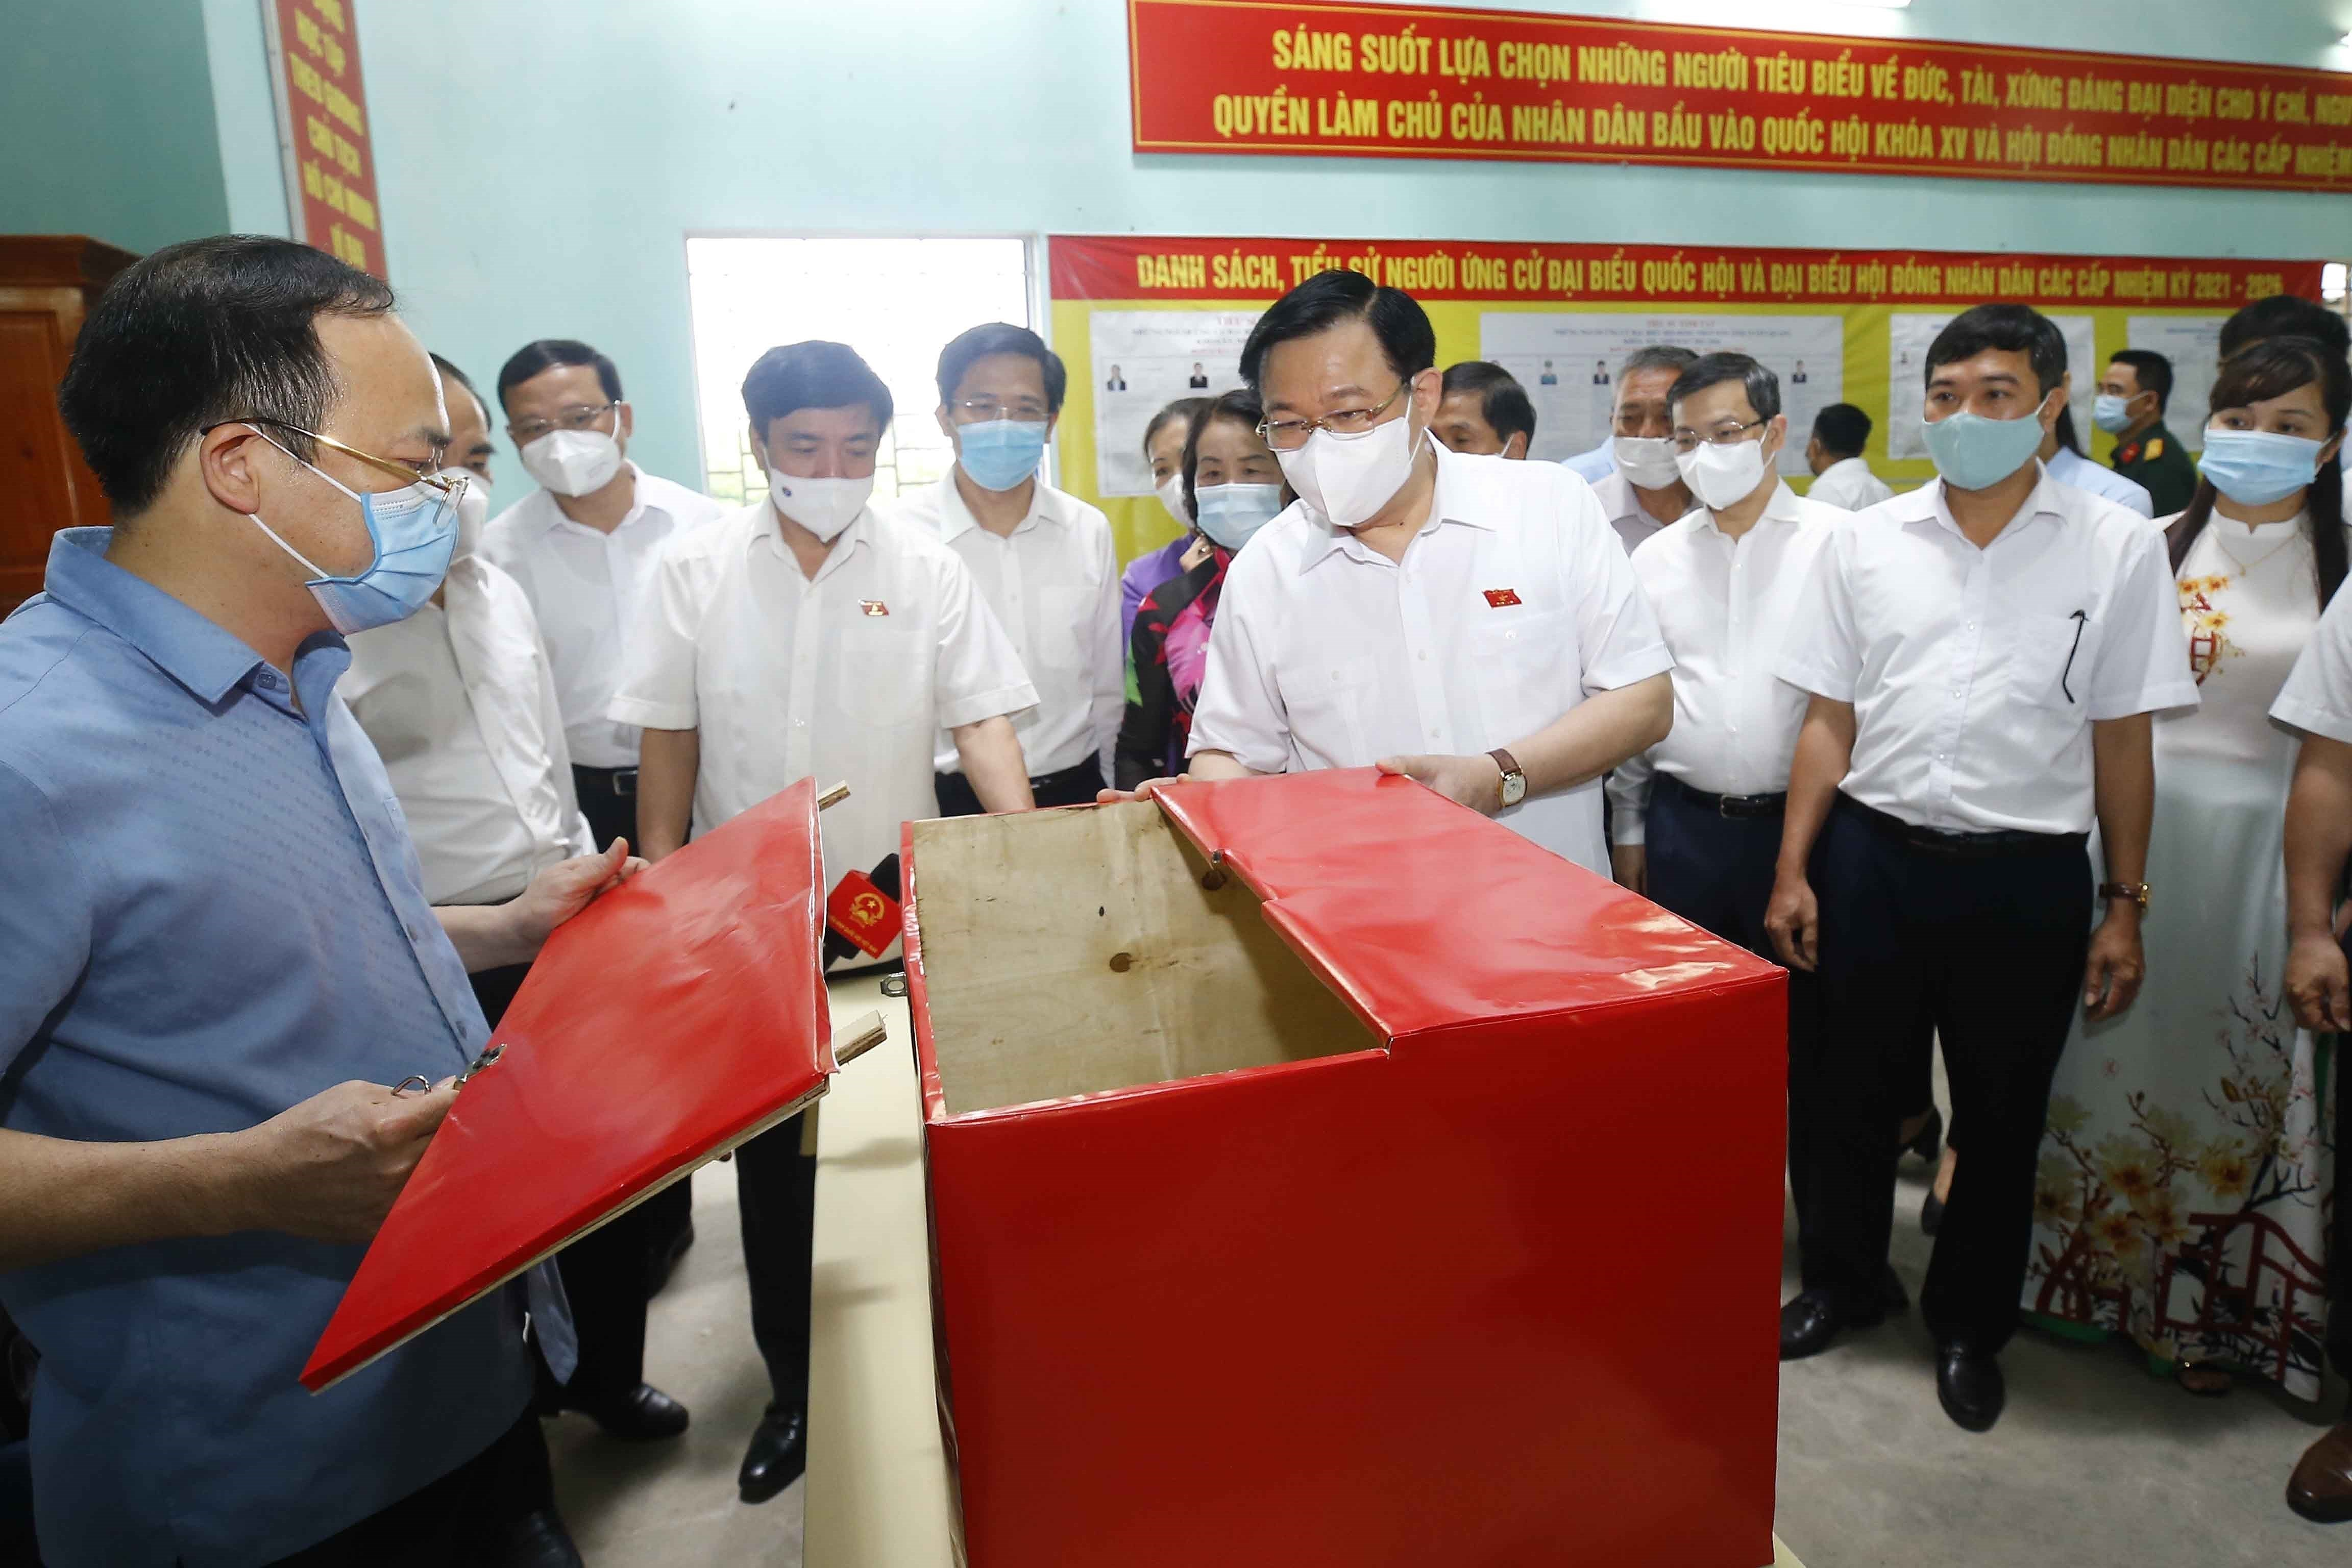 Legislative leader inspects election preparations in Tuyen Quang province hinh anh 2